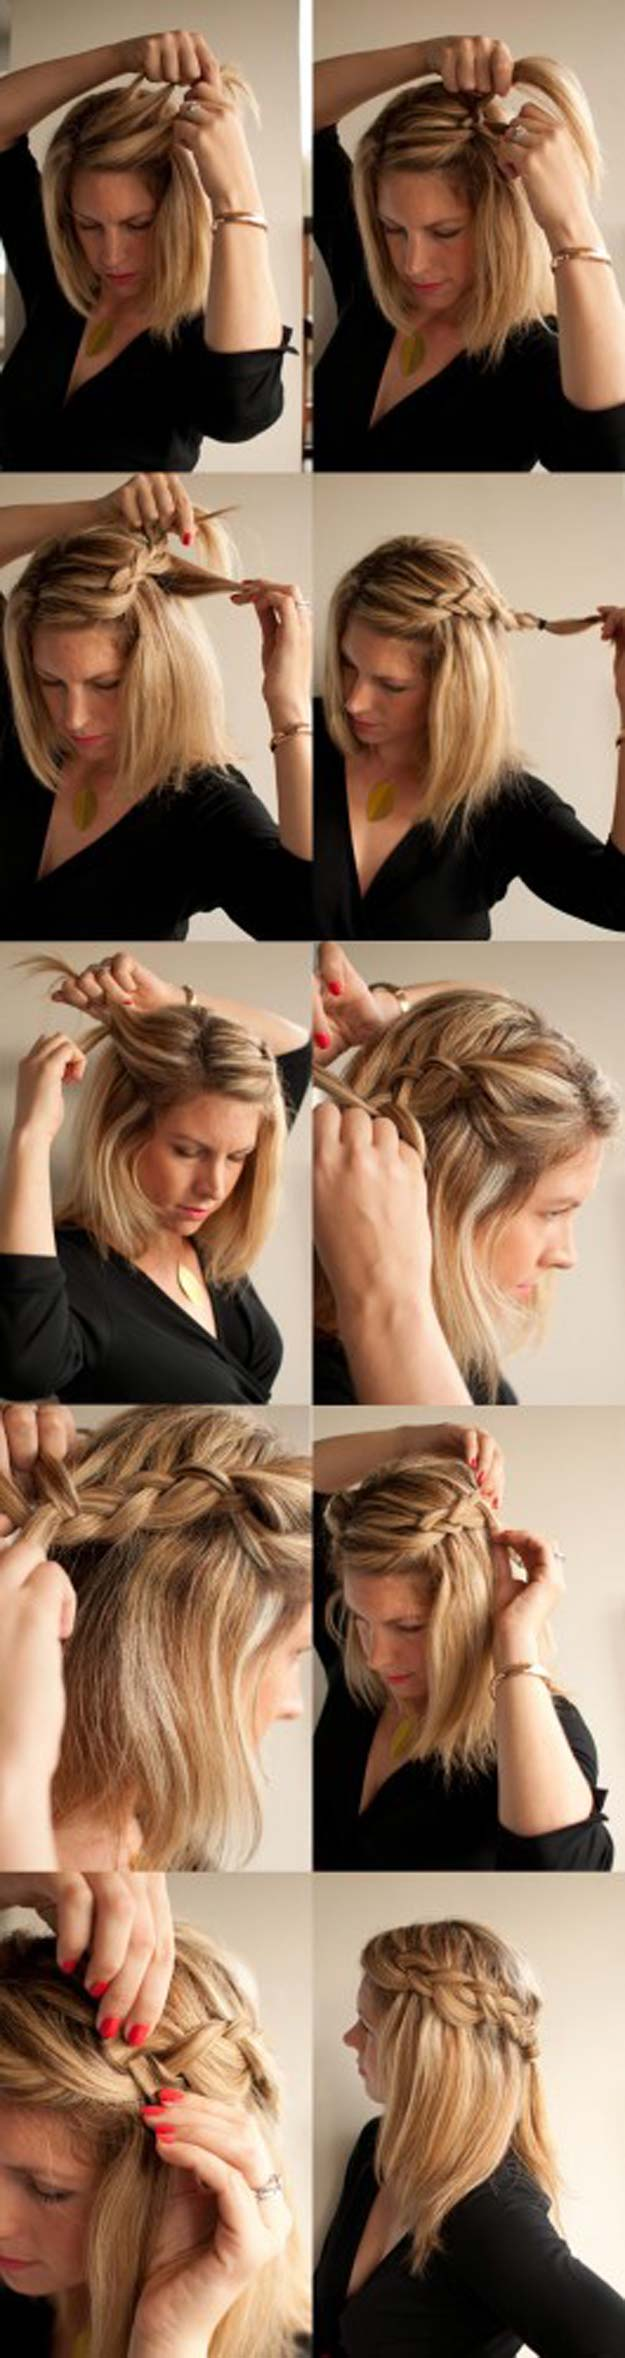 15 Quick And Easy Hairstyle For Busy Women